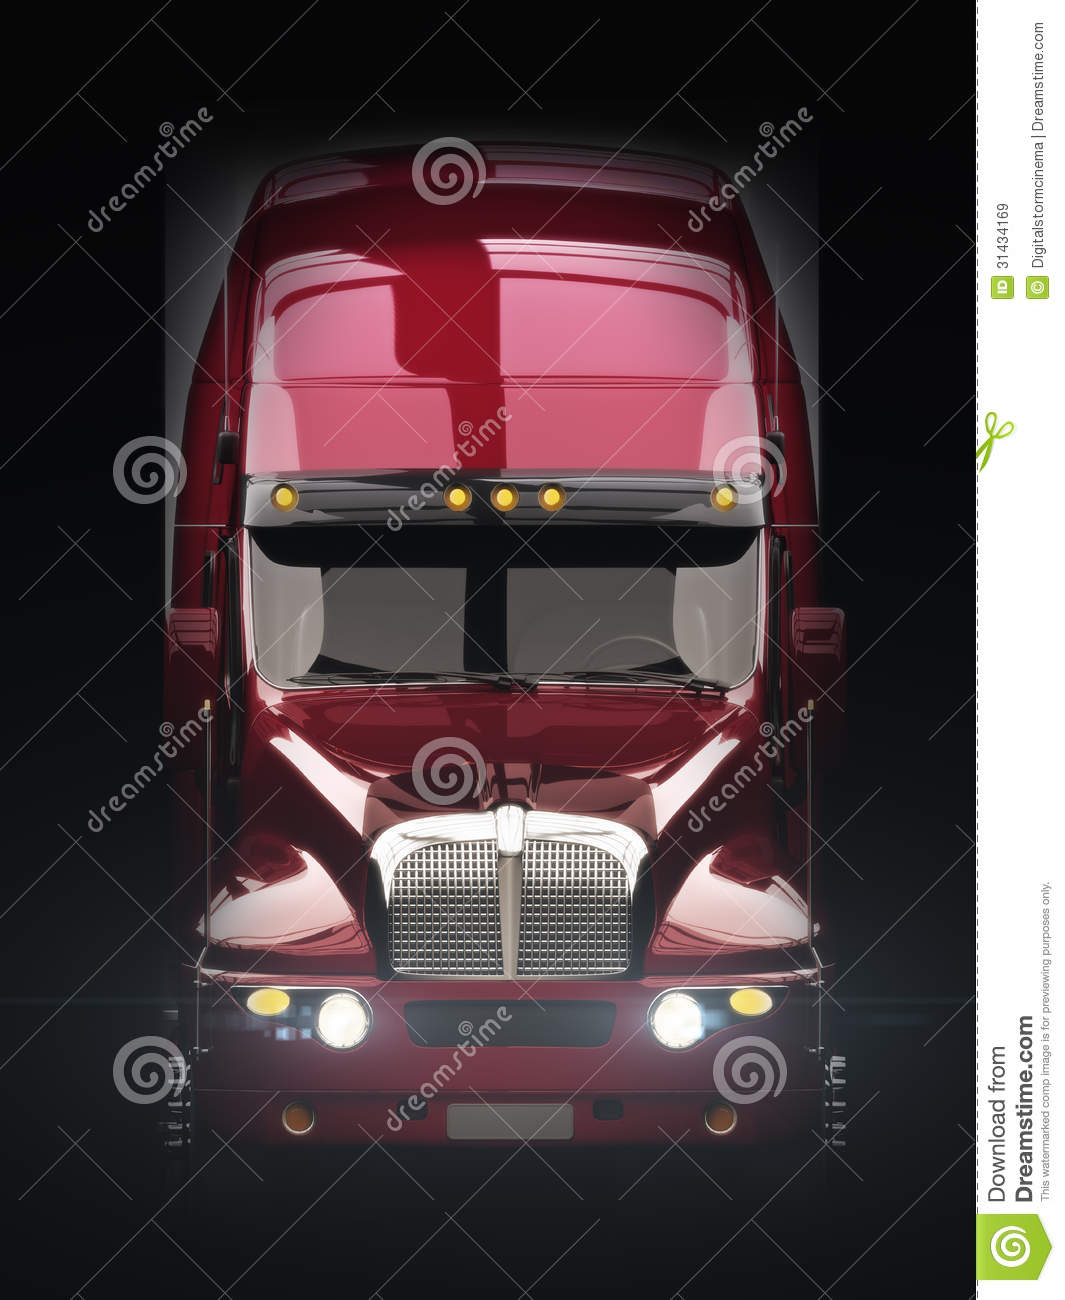 Semi Truck Seats >> Semi Truck Front View Royalty Free Stock Images - Image: 31434169